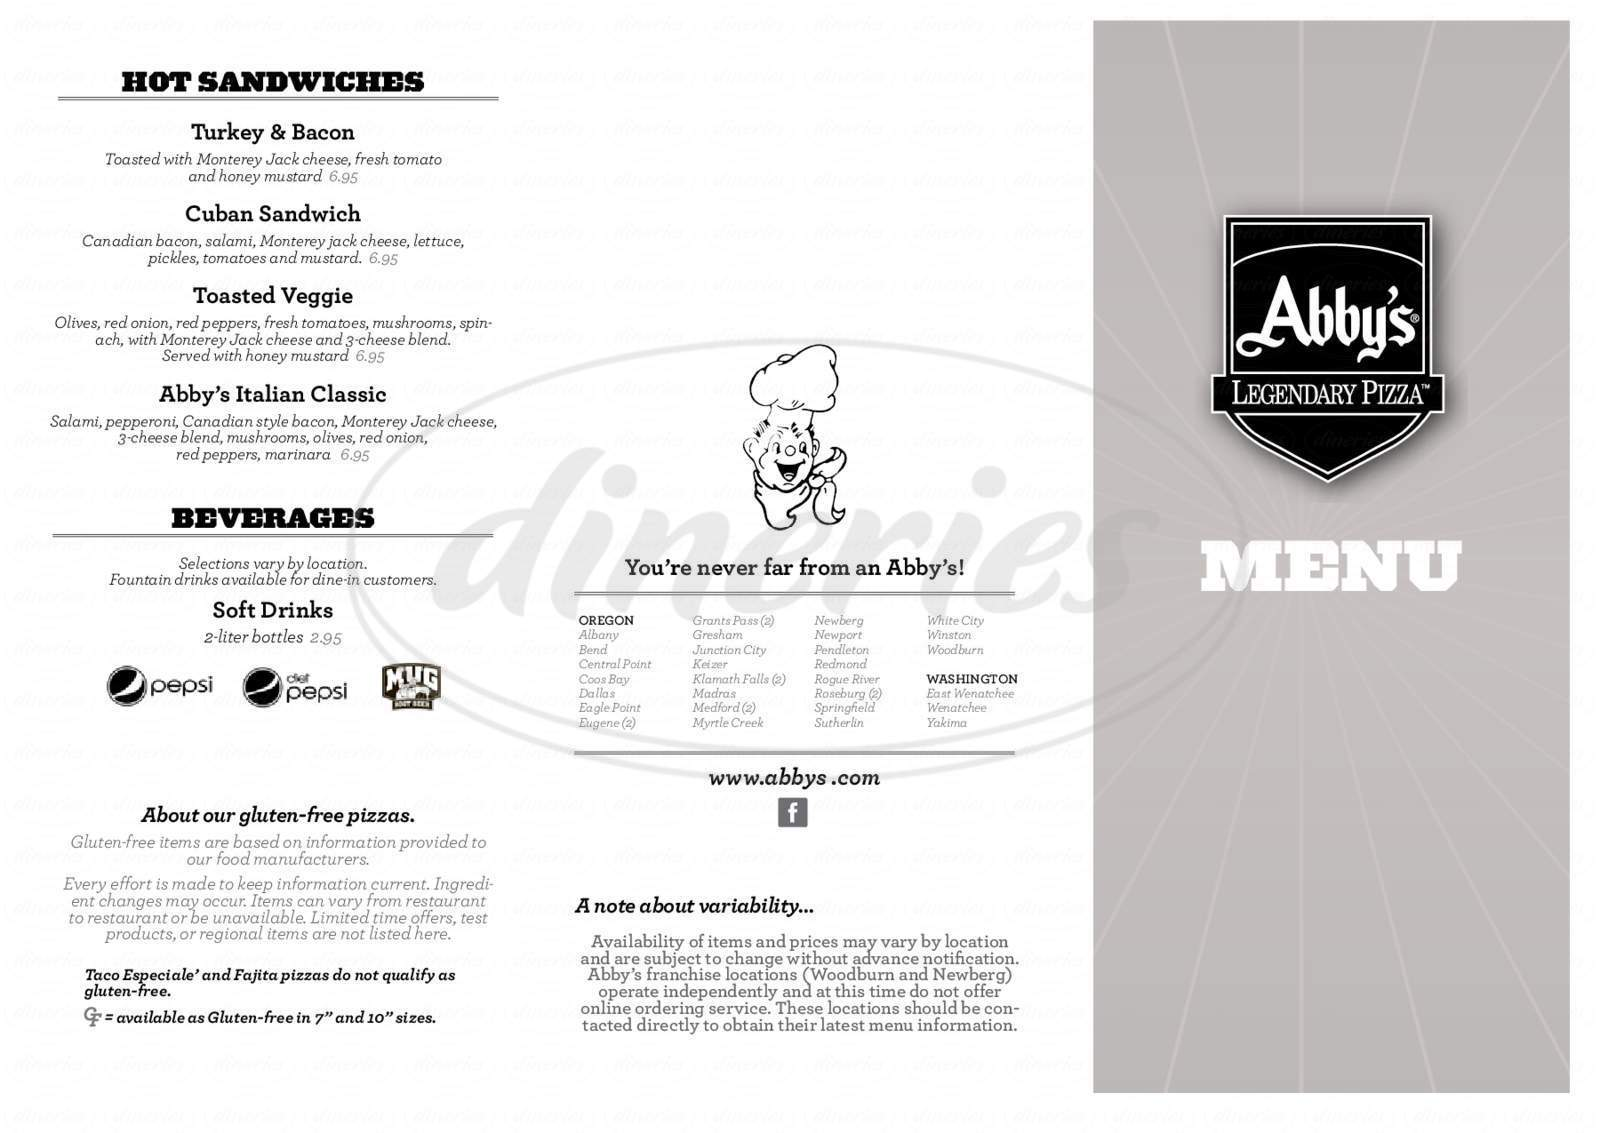 menu for Abby's Legendary Pizza